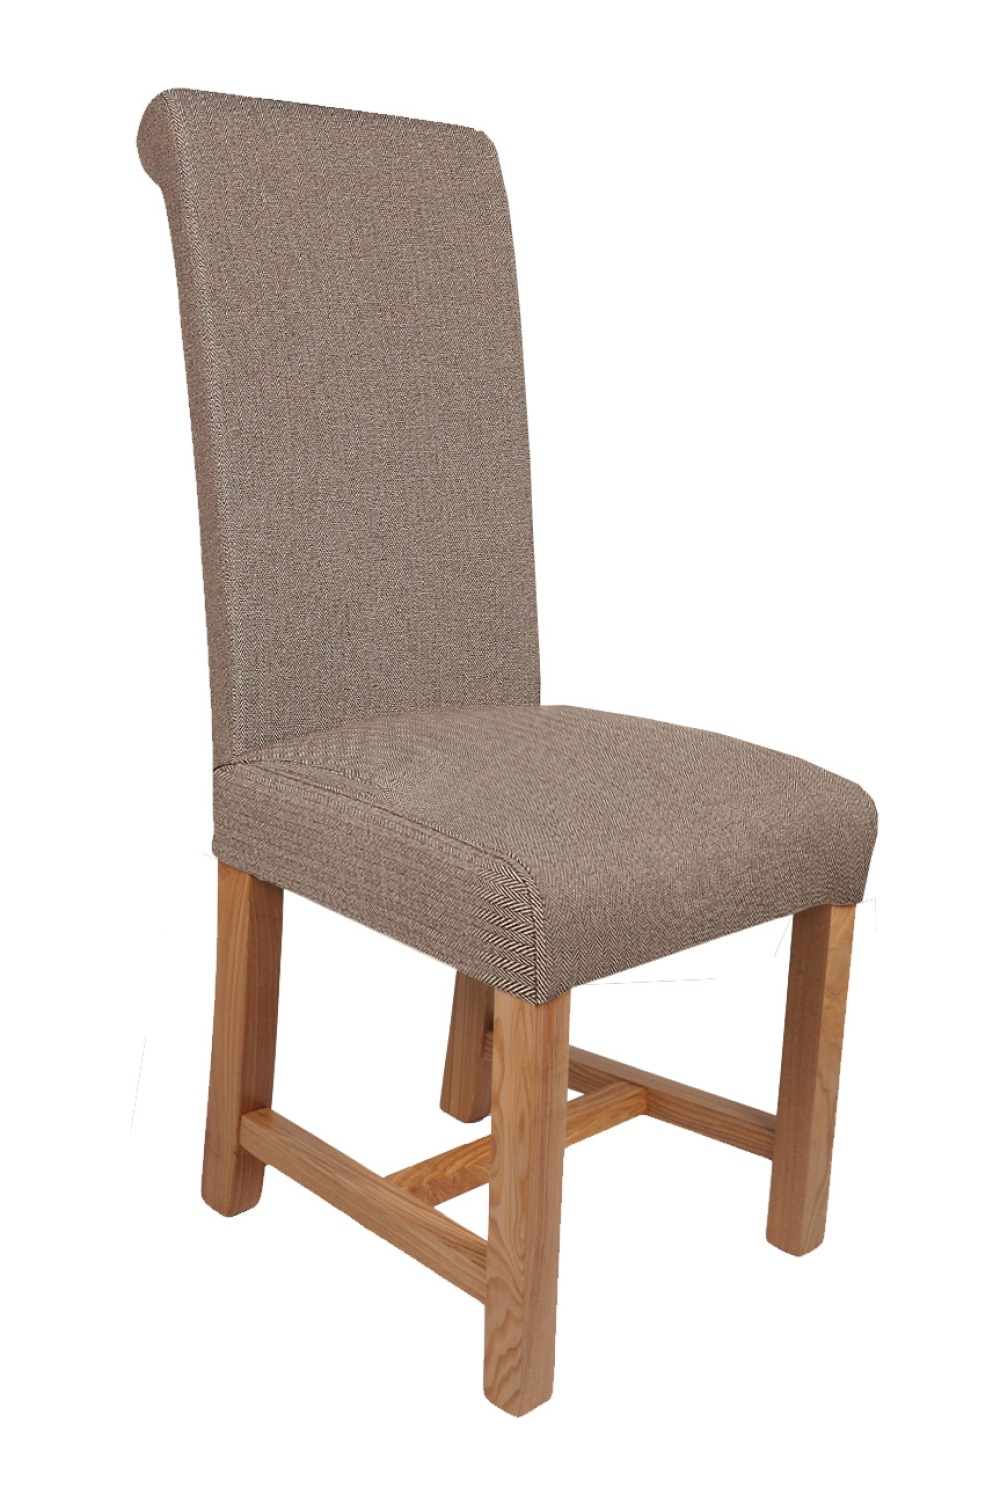 Furniture Village Belfast chairs gumtree ni - thesecretconsul